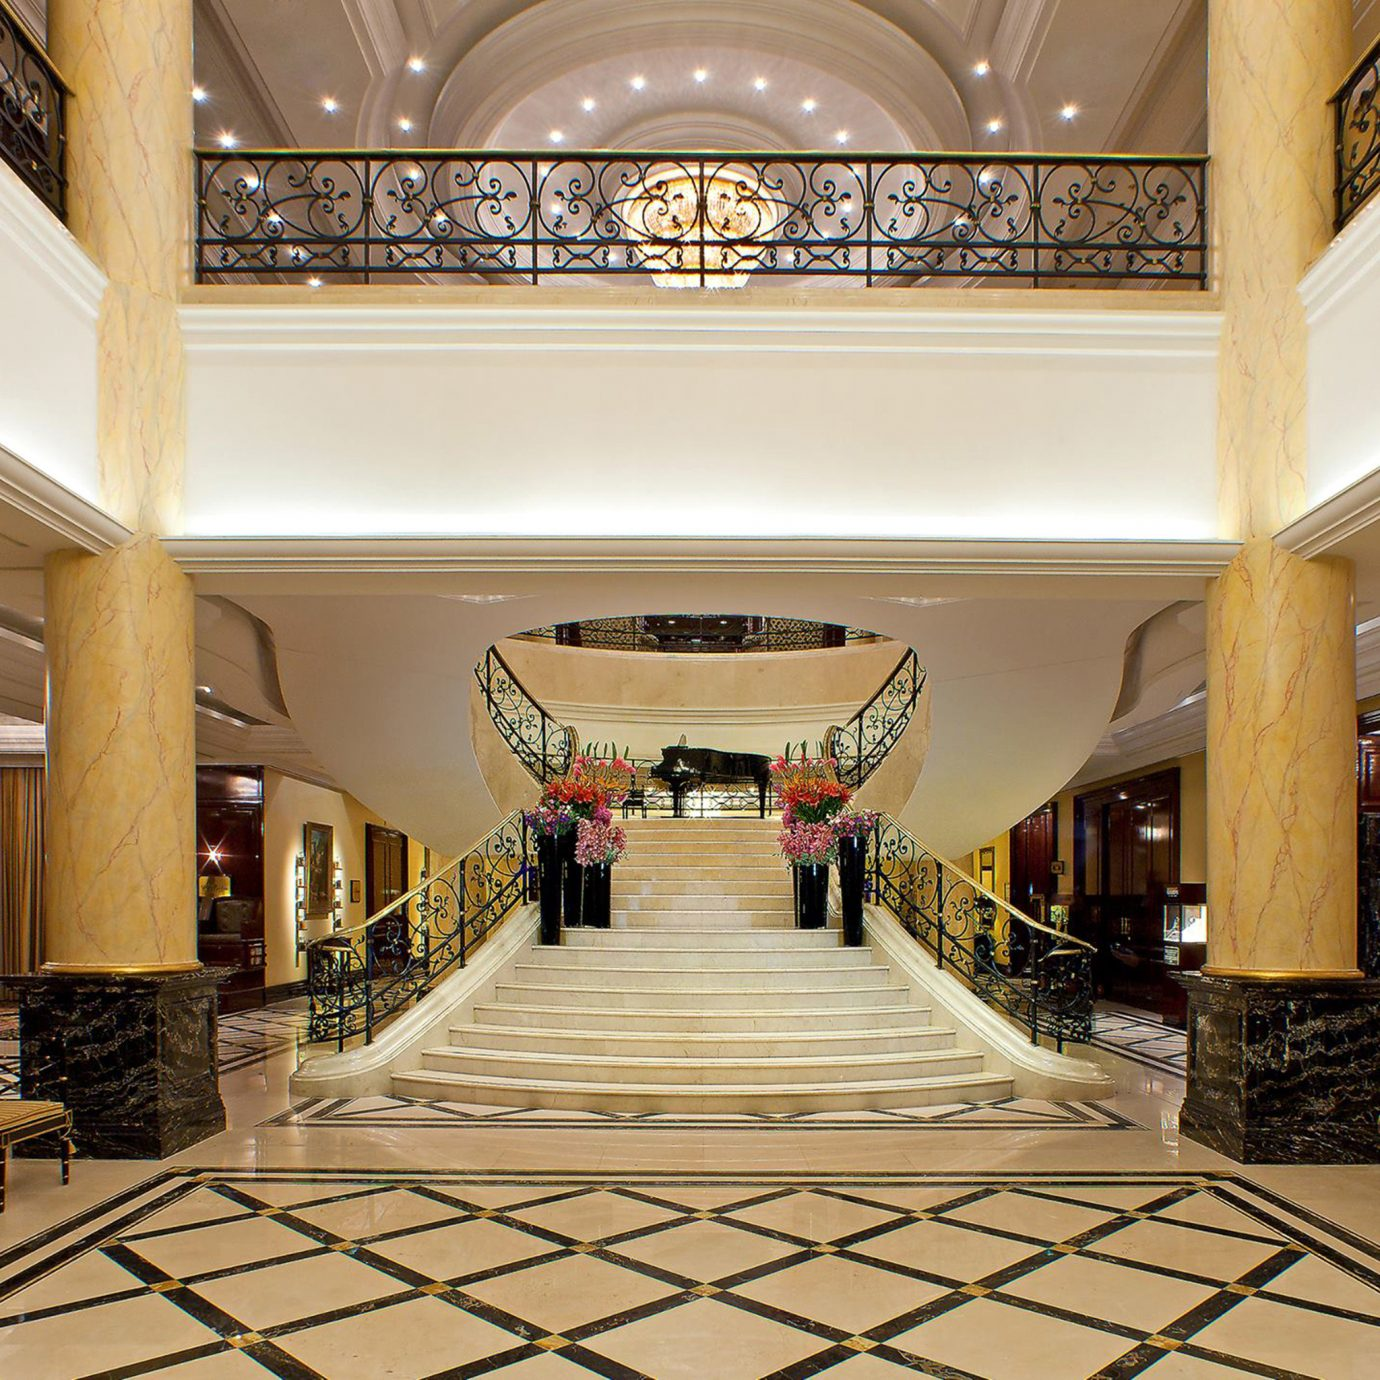 Business City Lobby Luxury Romance building mansion palace home hall living room flooring